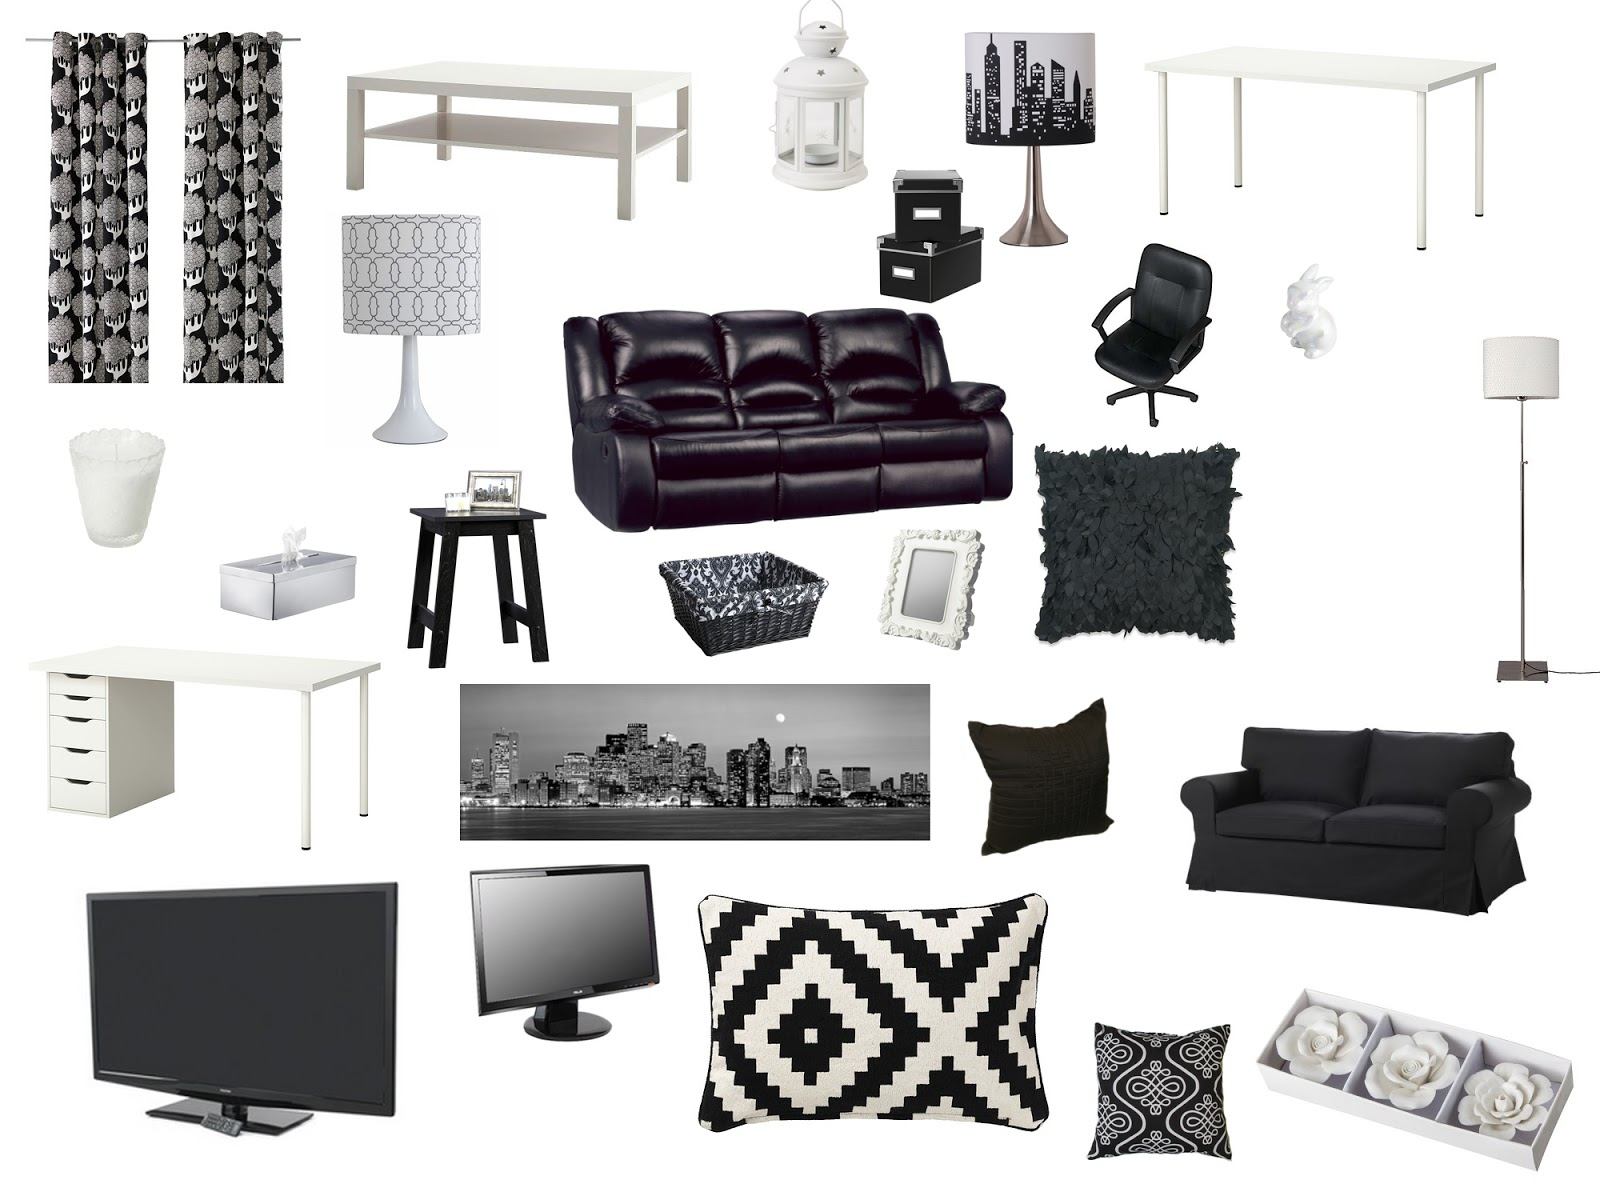 Luhivy 39 s favorite things black and white living room home for Favorite things home decor